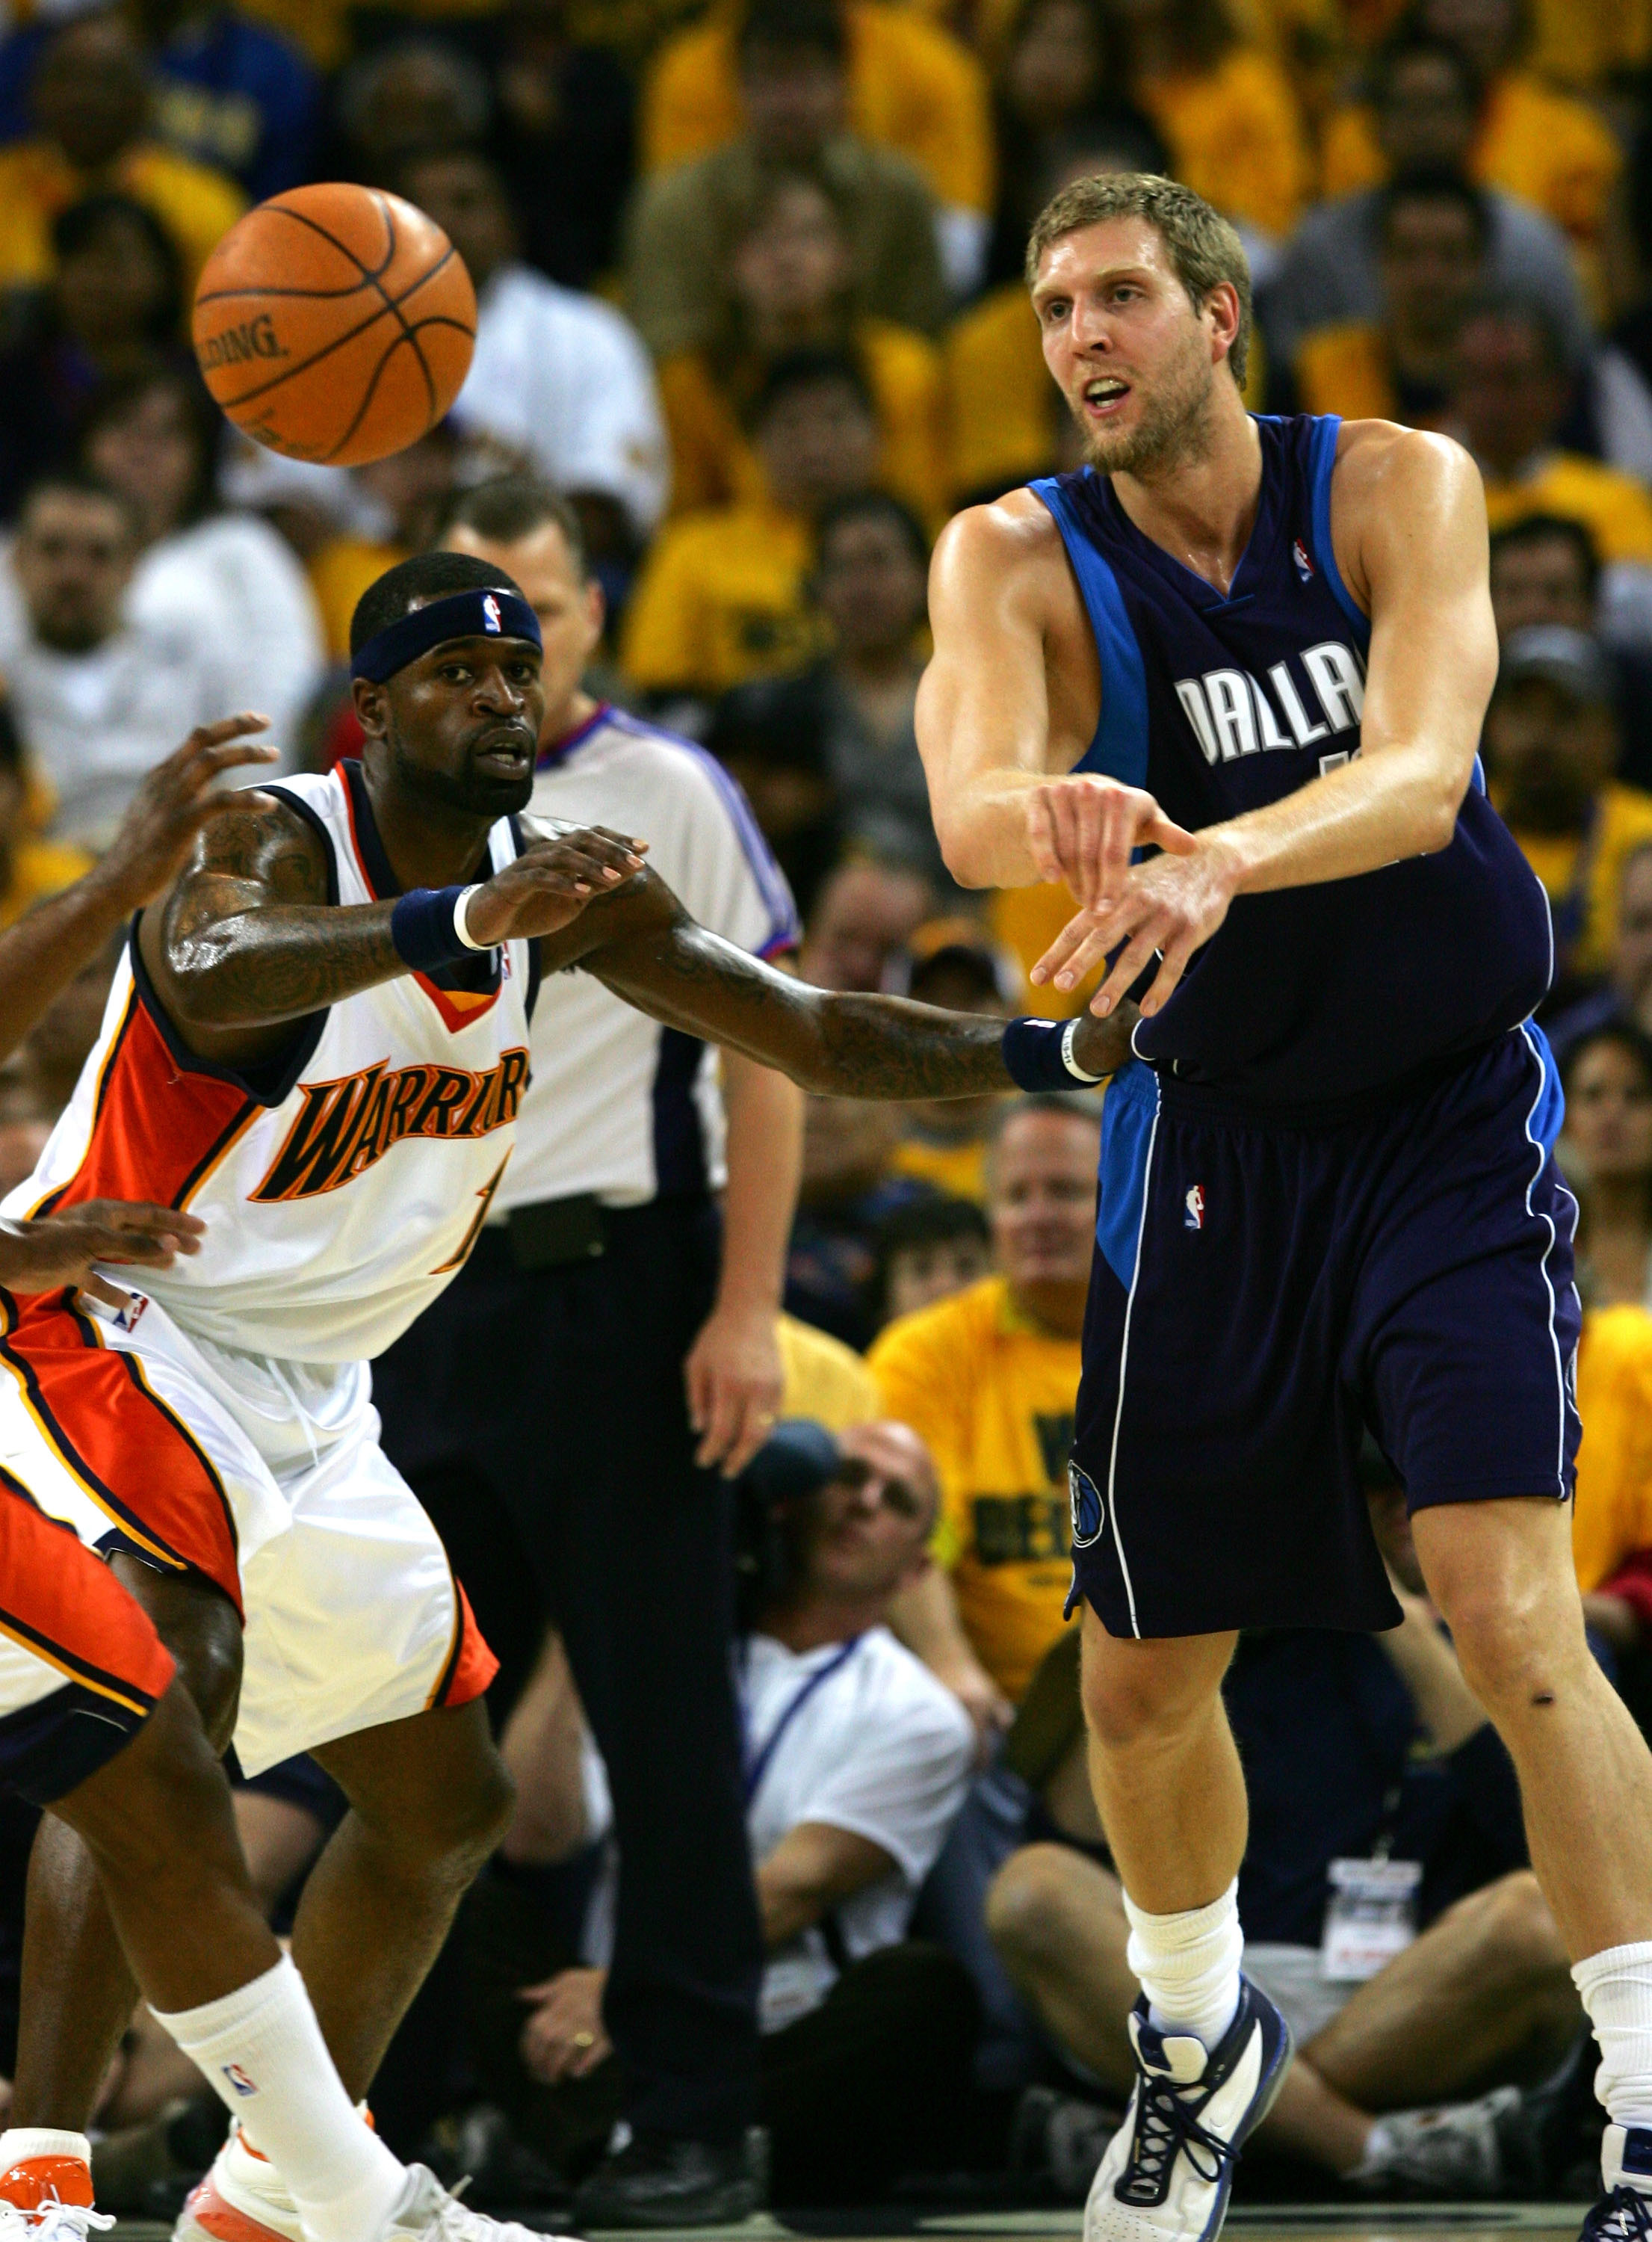 OAKLAND, CA - MAY 03: Dirk Nowitizki #41 of the Dallas Mavericks passes the ball against Stephen Jackson #1 of the Golden State Warriors in Game 6 of the Western Conference Quarterfinals during the 2007 NBA Playoffs on May 3, 2007 at Oracle Arena in Oakla